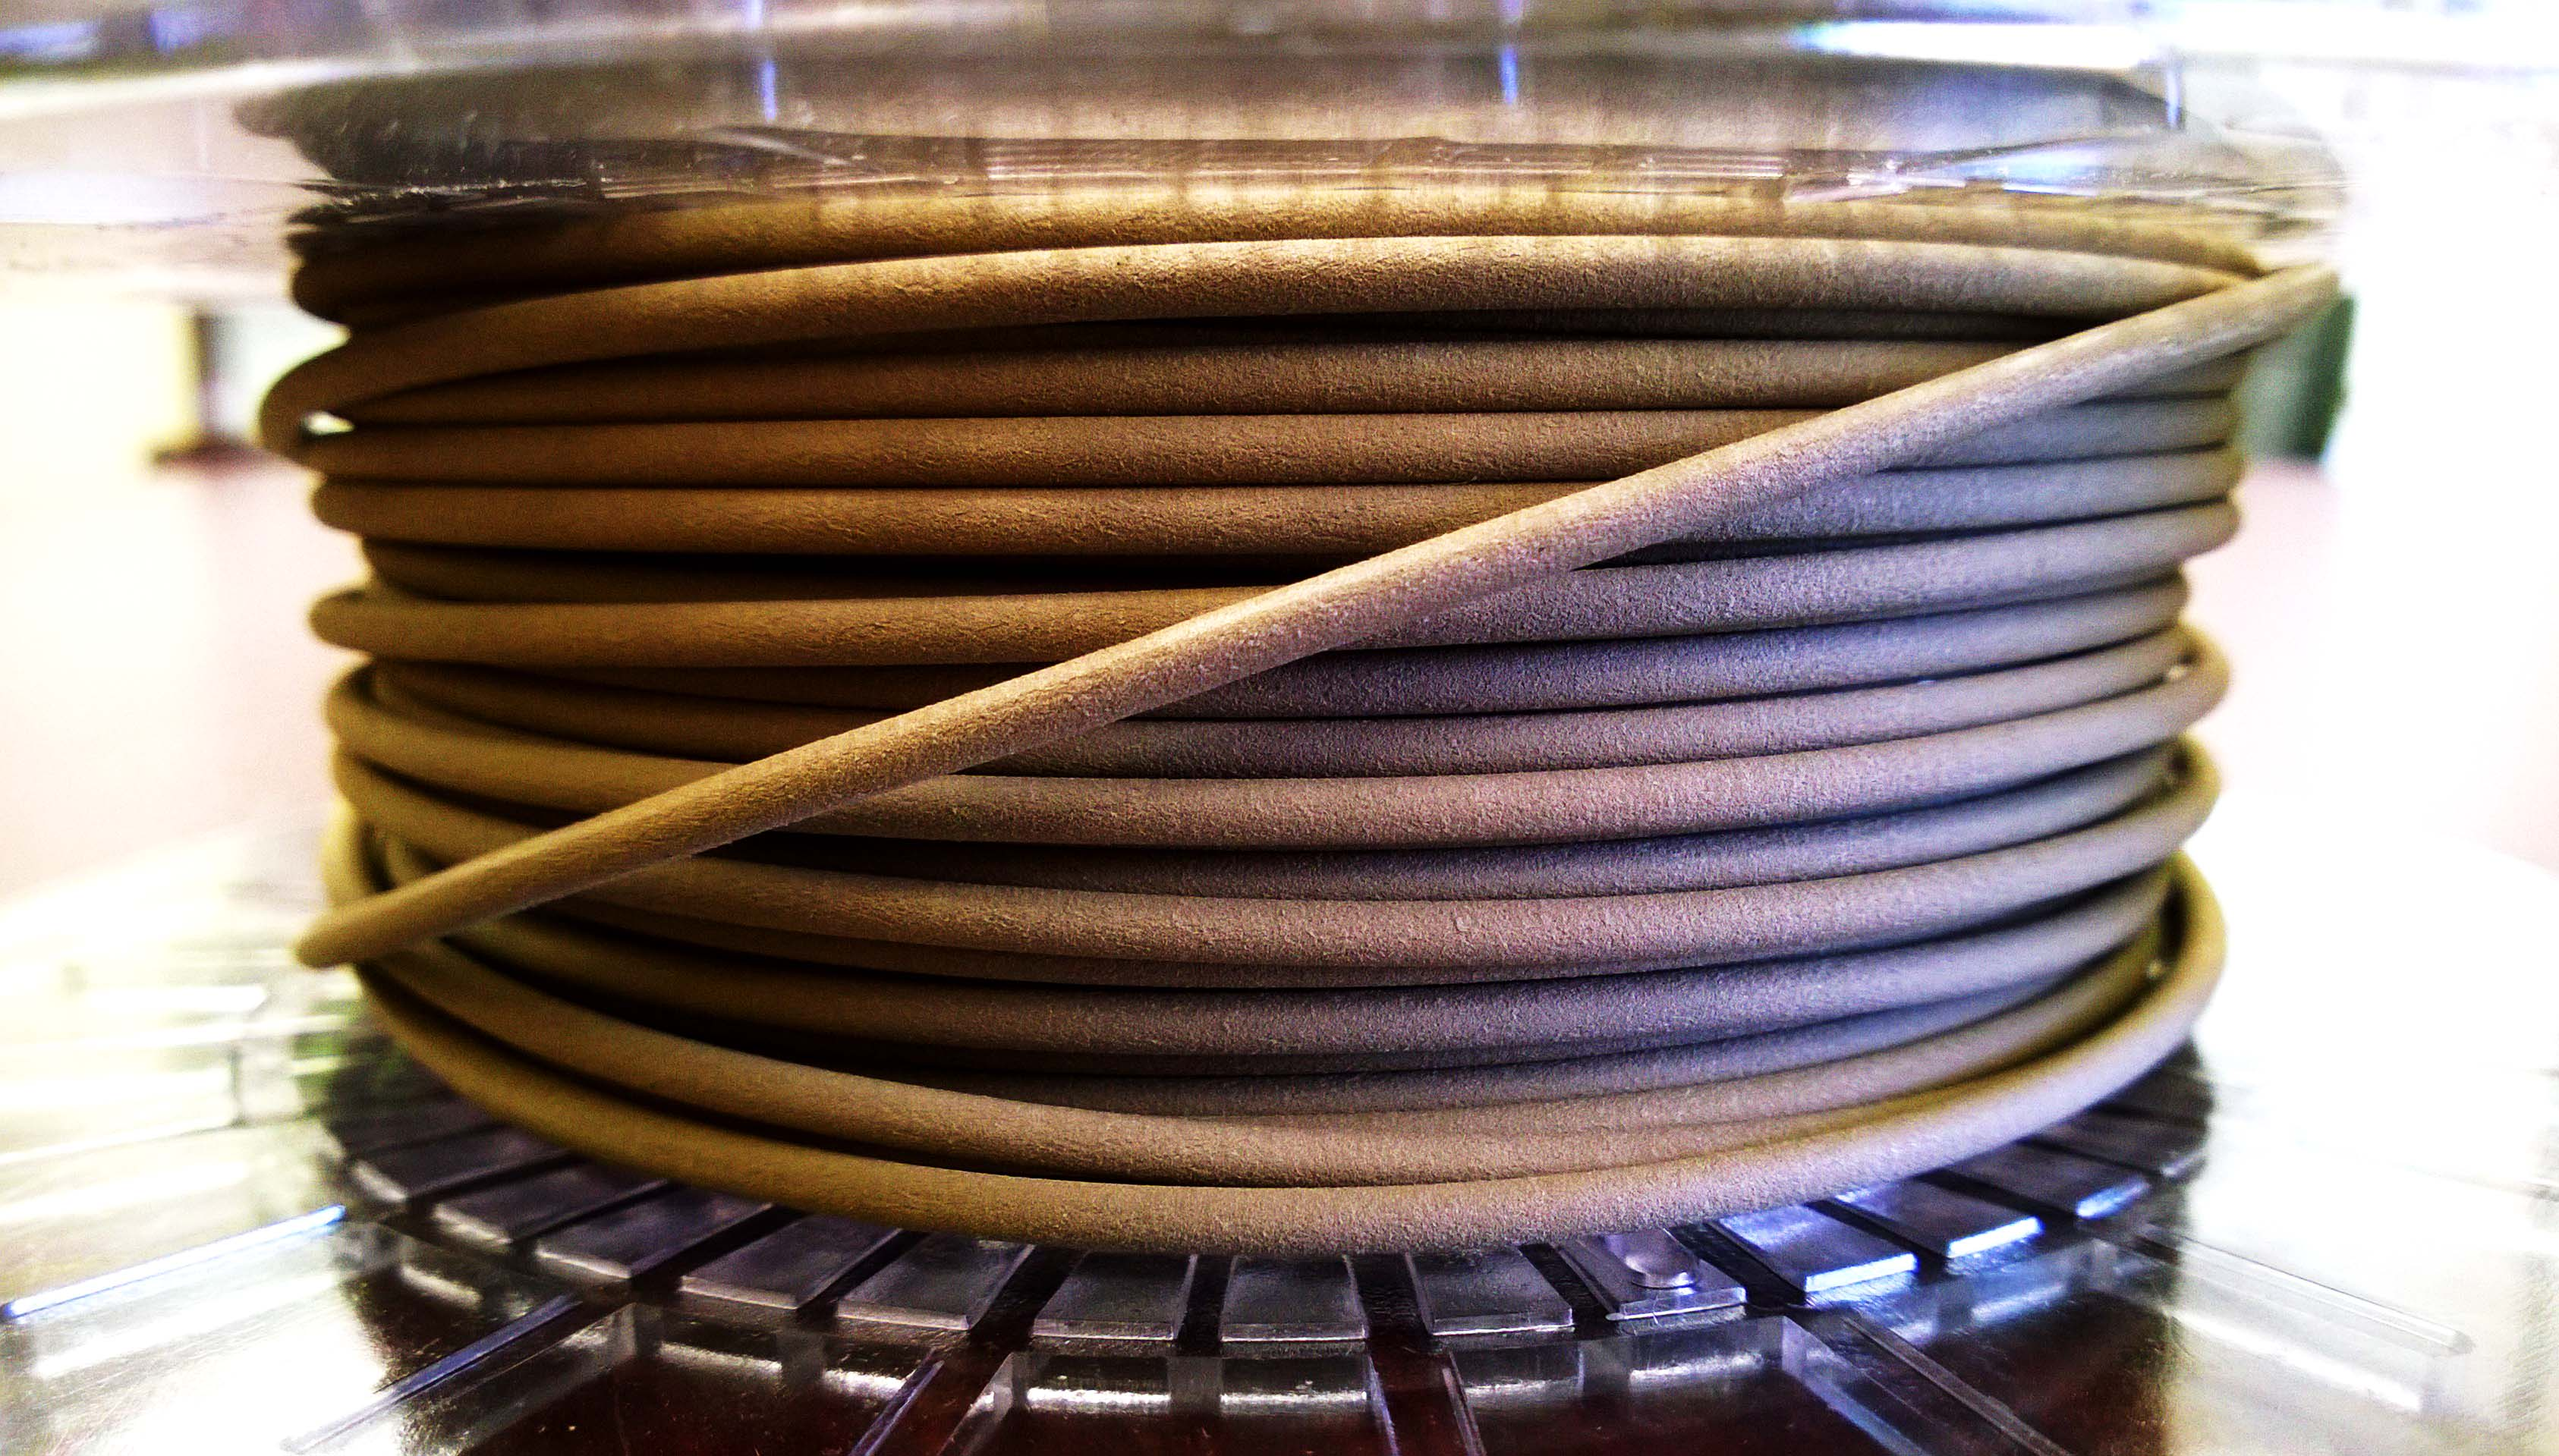 3D Printed Bronze filament spool